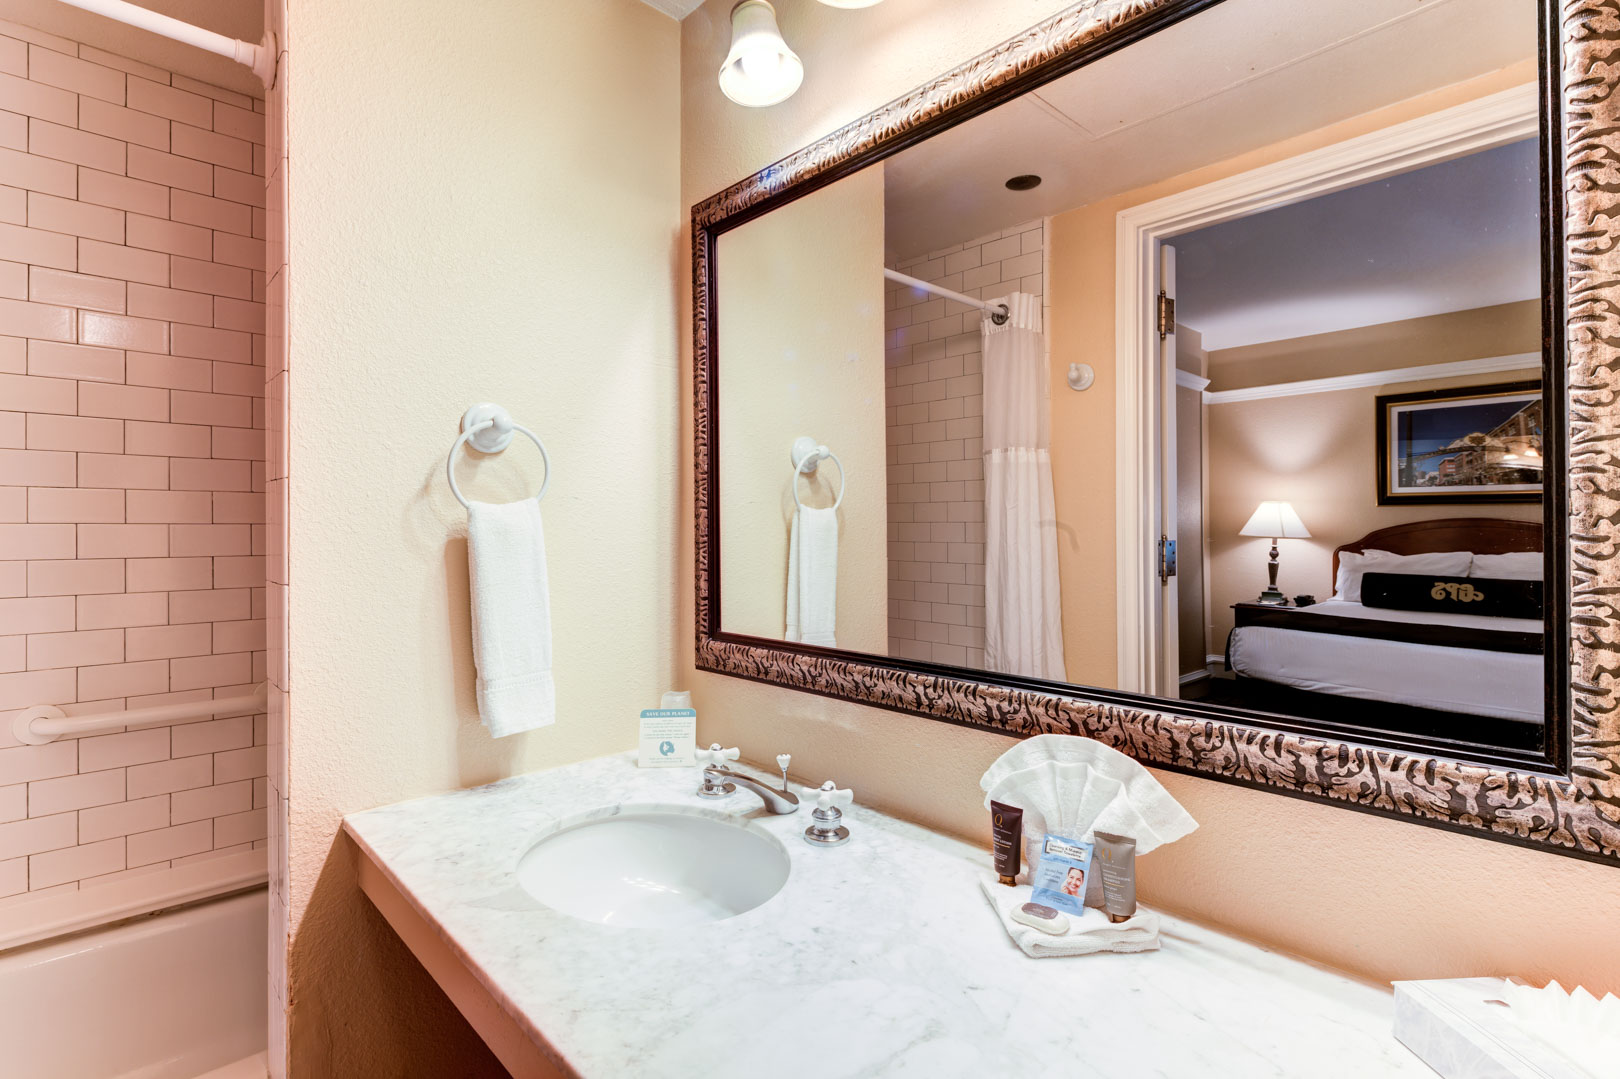 A clean bathroom at VRI's Gaslamp Plaza Suites in San Diego, California.